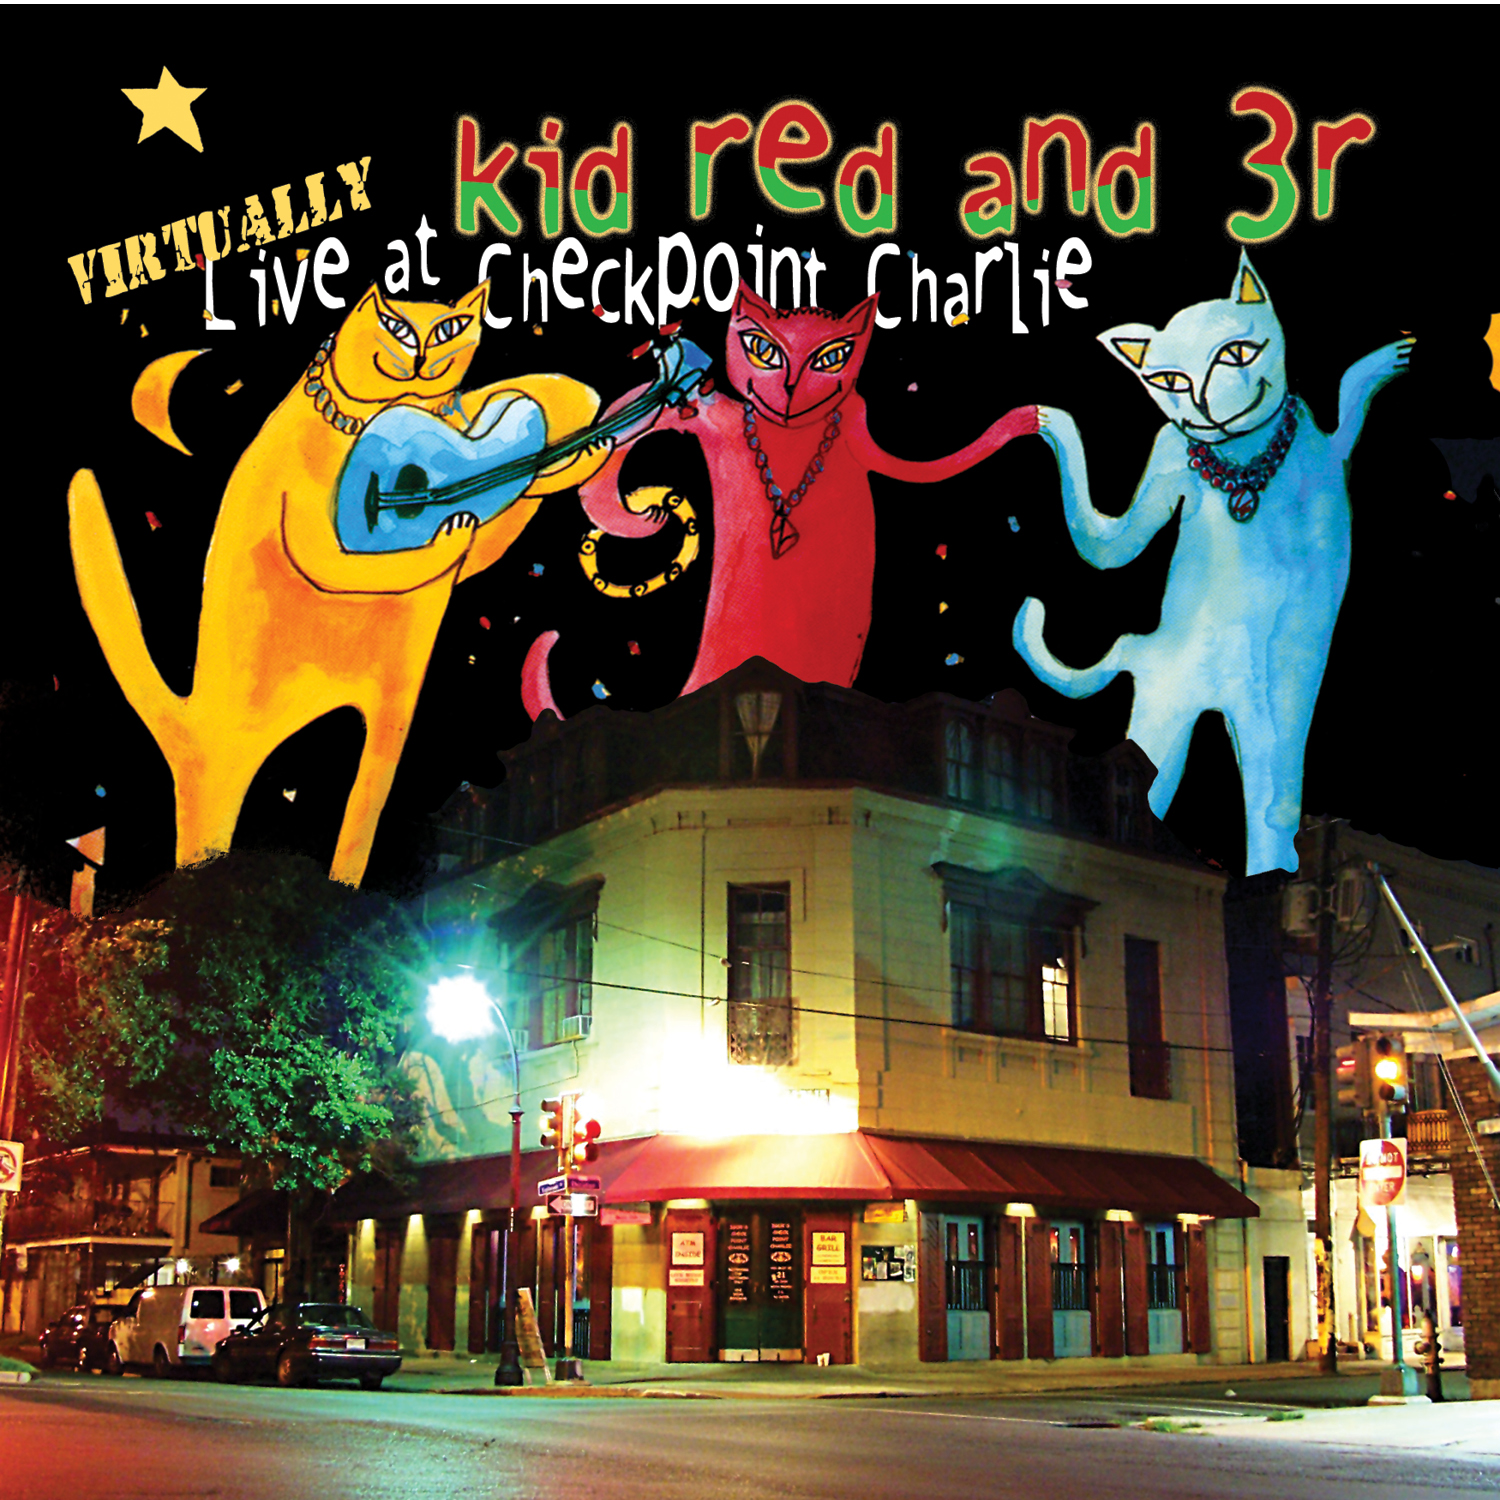 Kid Red and 3r – Live at Checkpoint Charlie